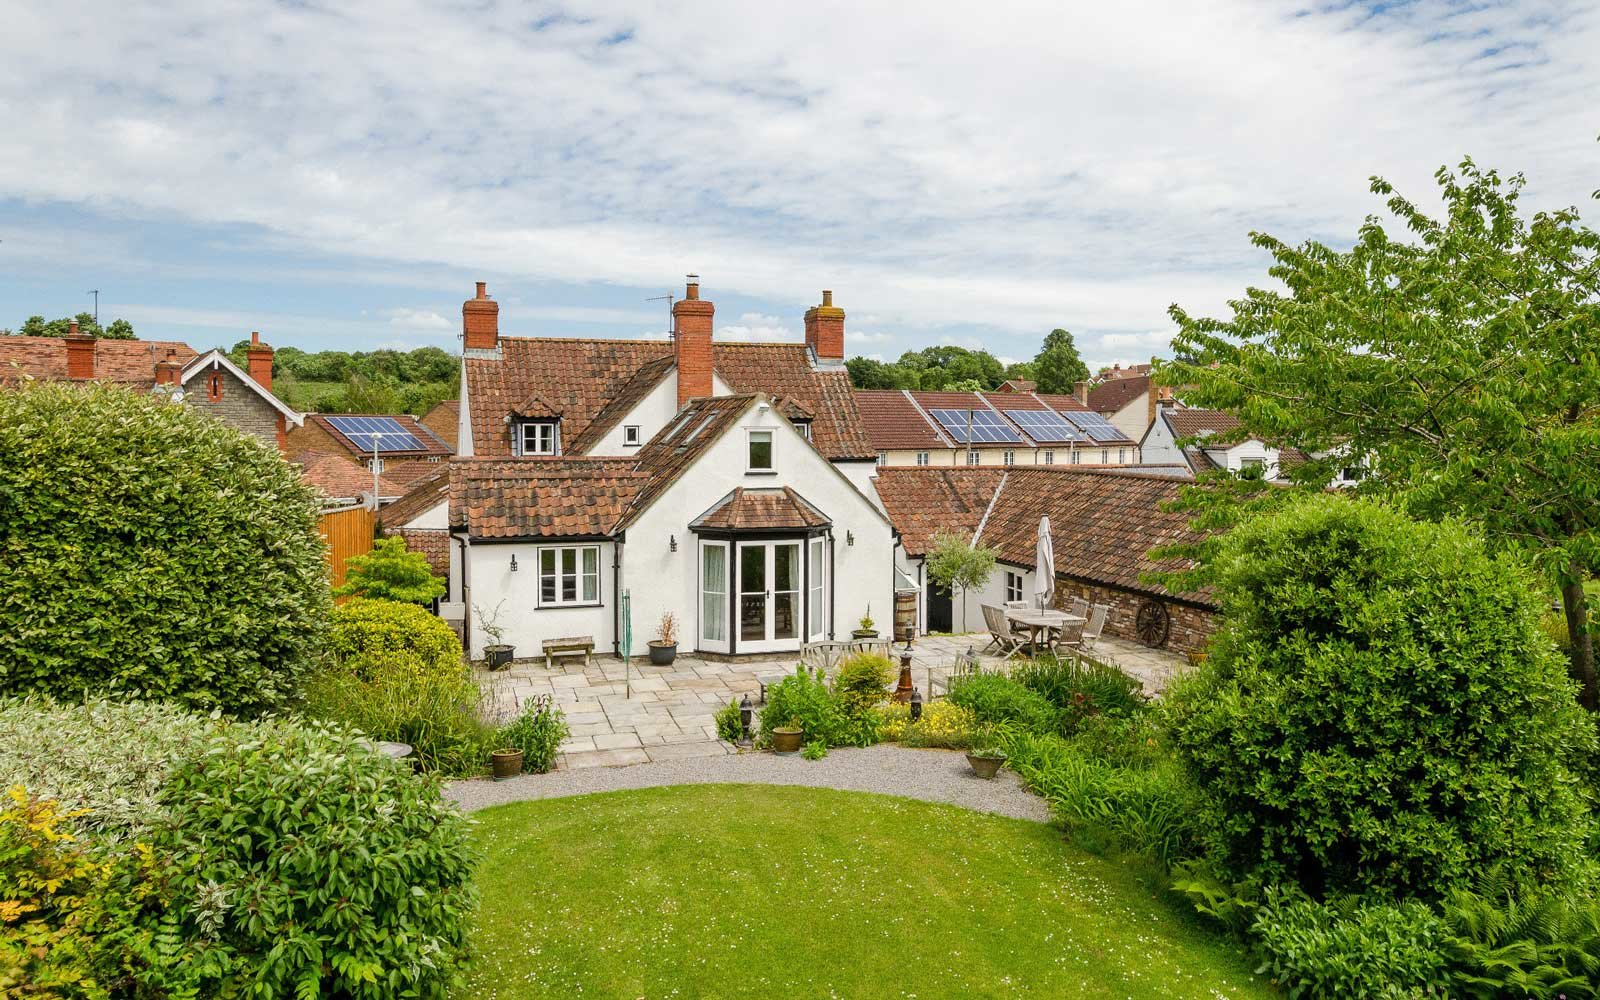 Home being raffled near Bristol, UK